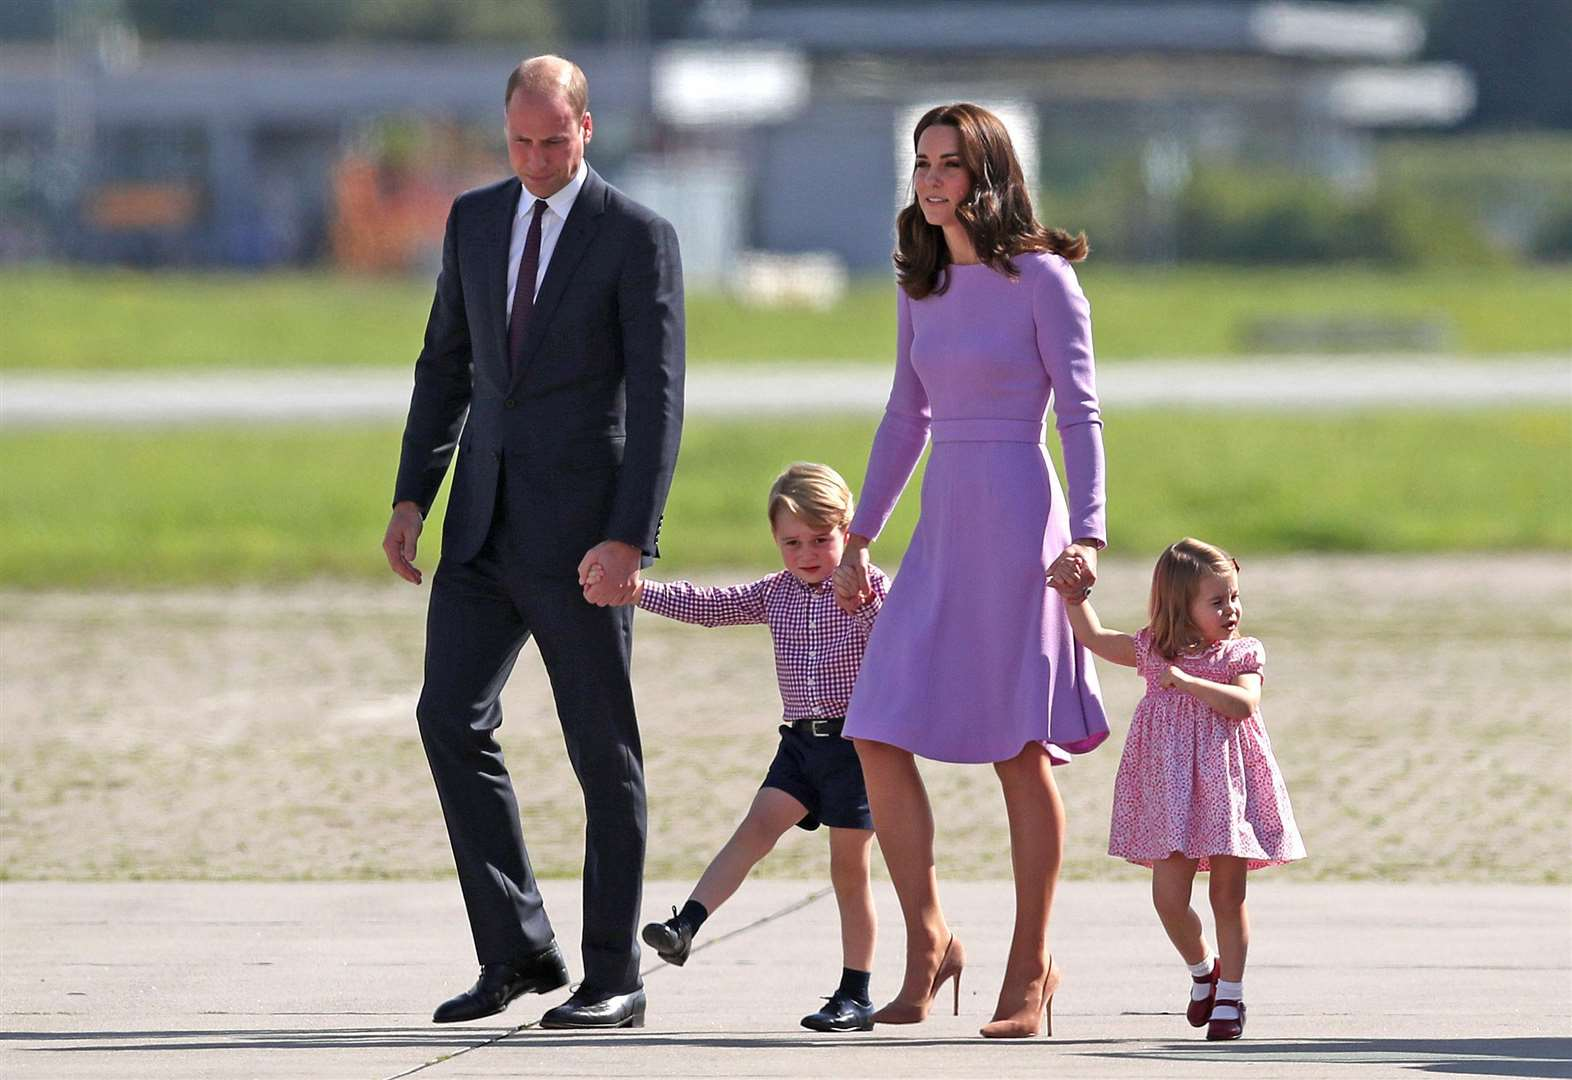 As George and Charlotte meet their brother: How to introduce your baby to your other children